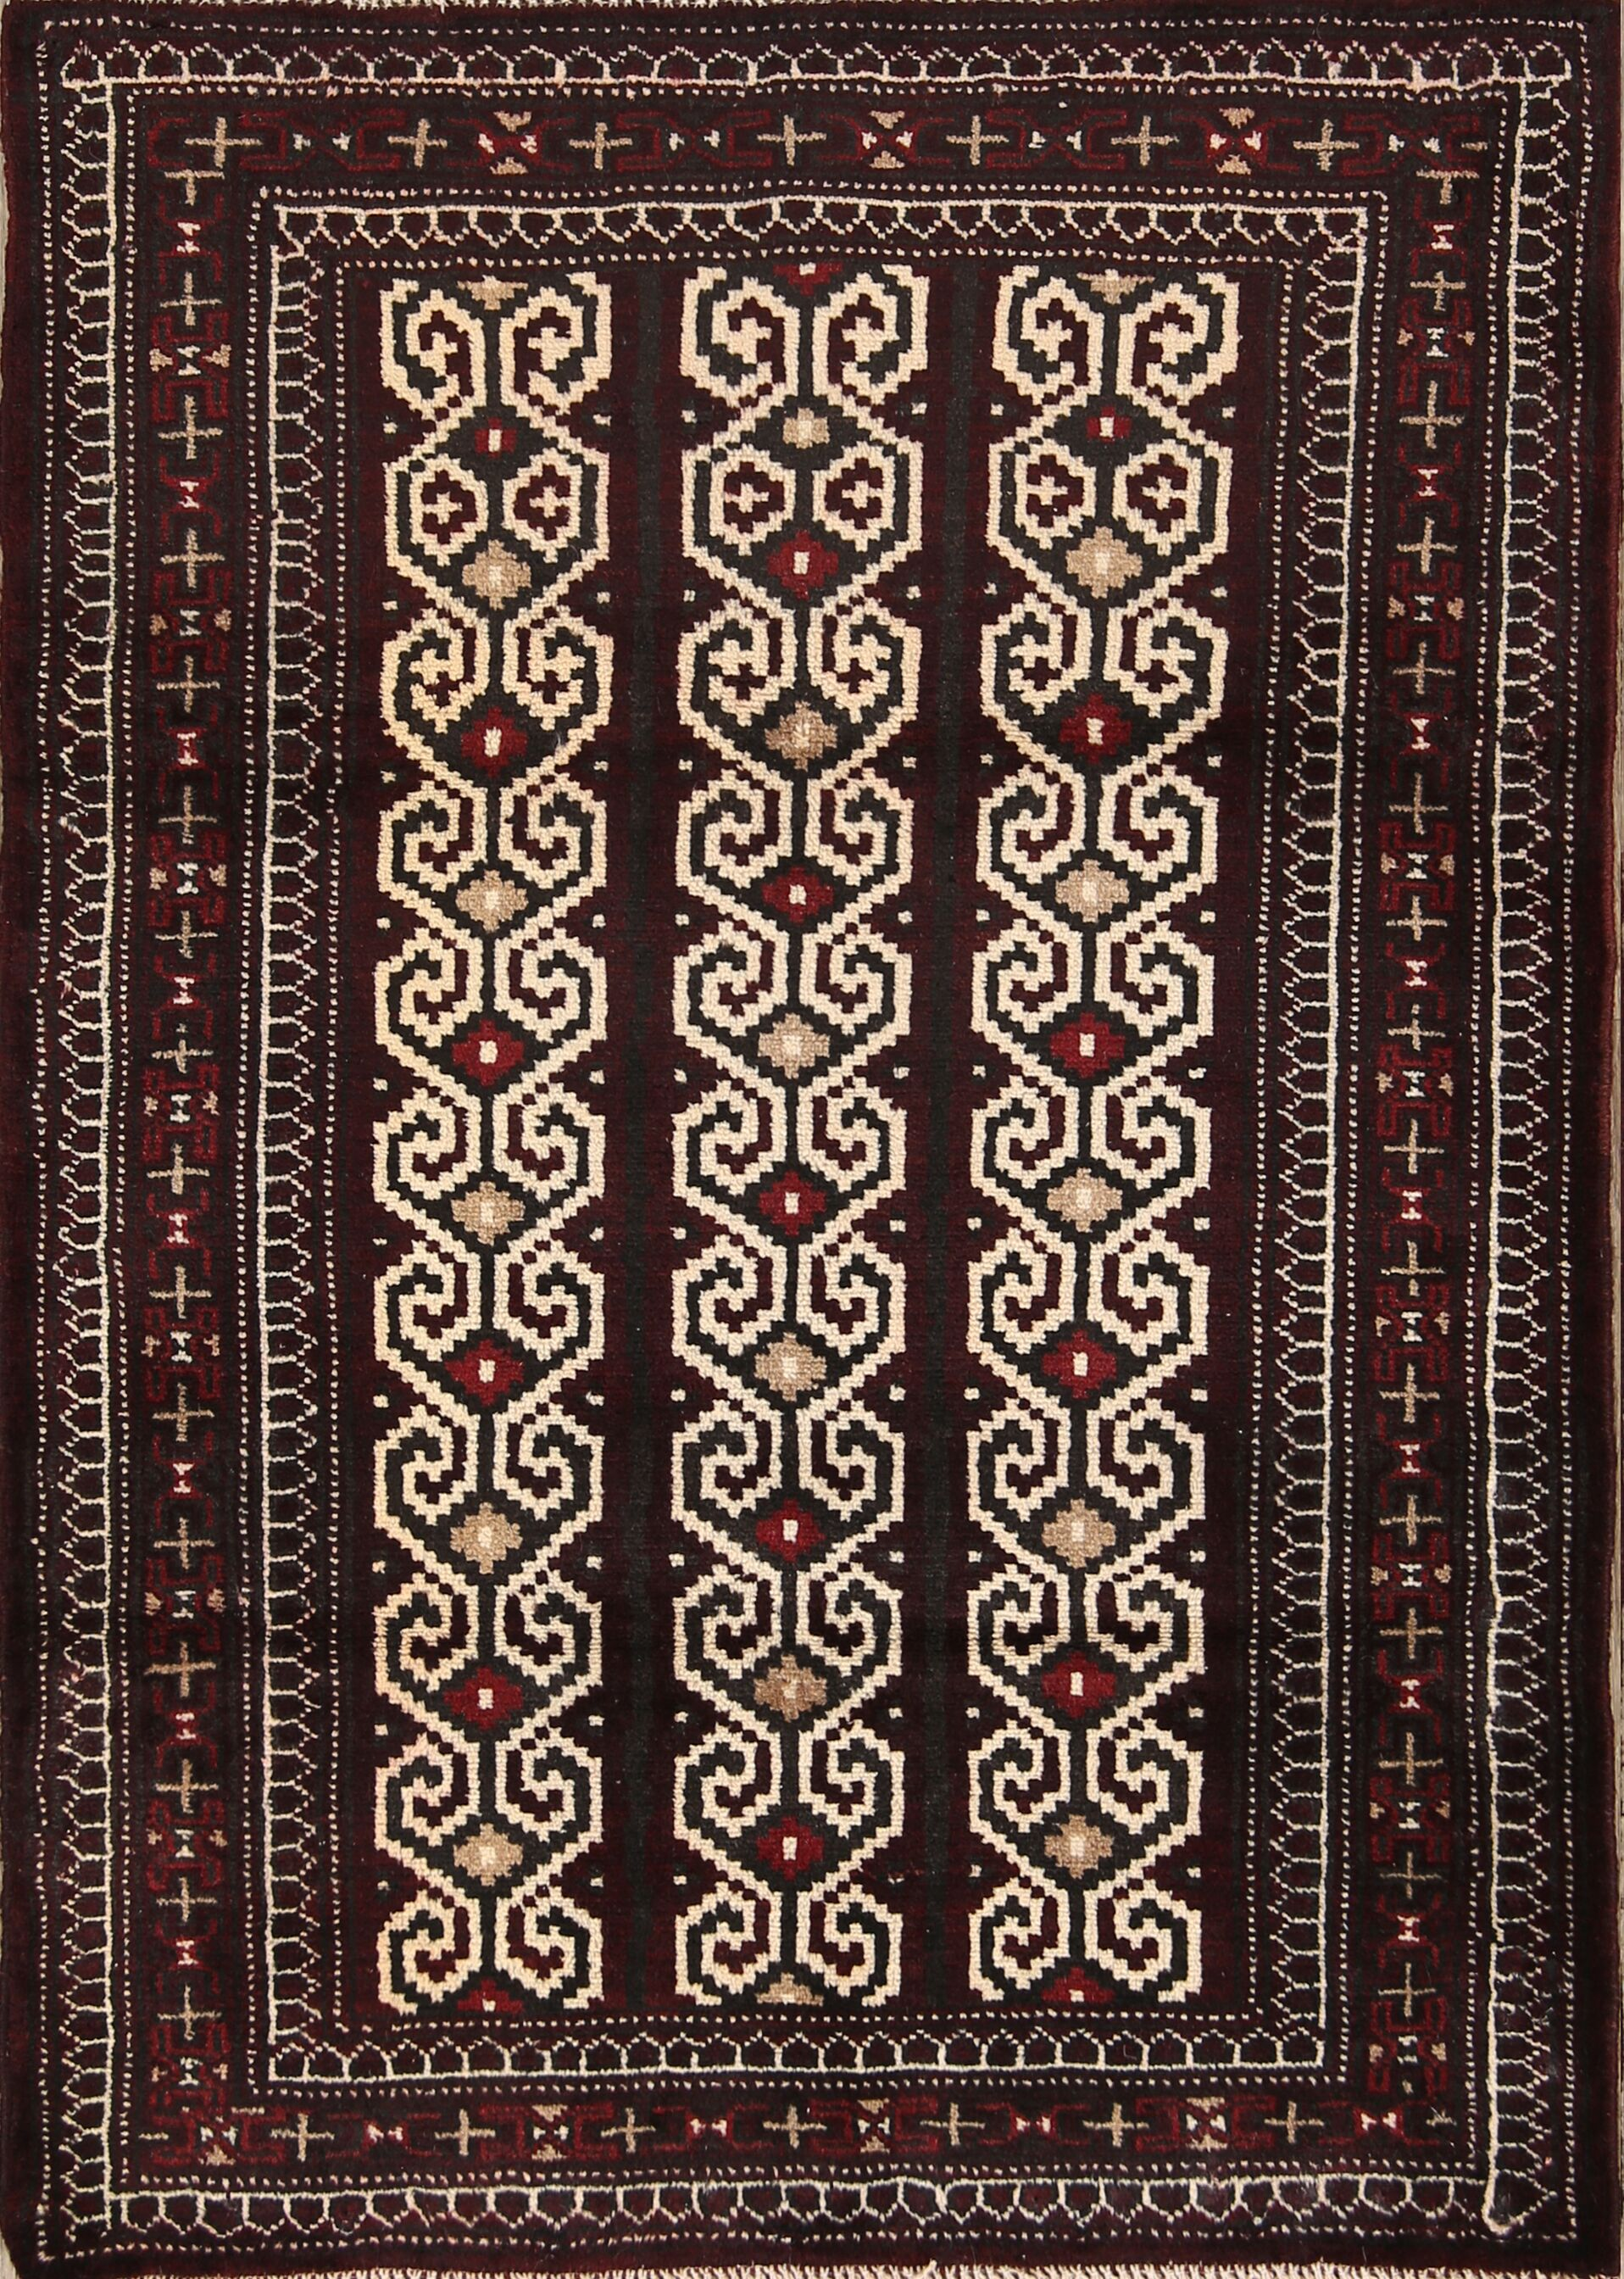 One-of-a-Kind Balouch Turkoman Persian Geometric Hand-Knotted 2'8